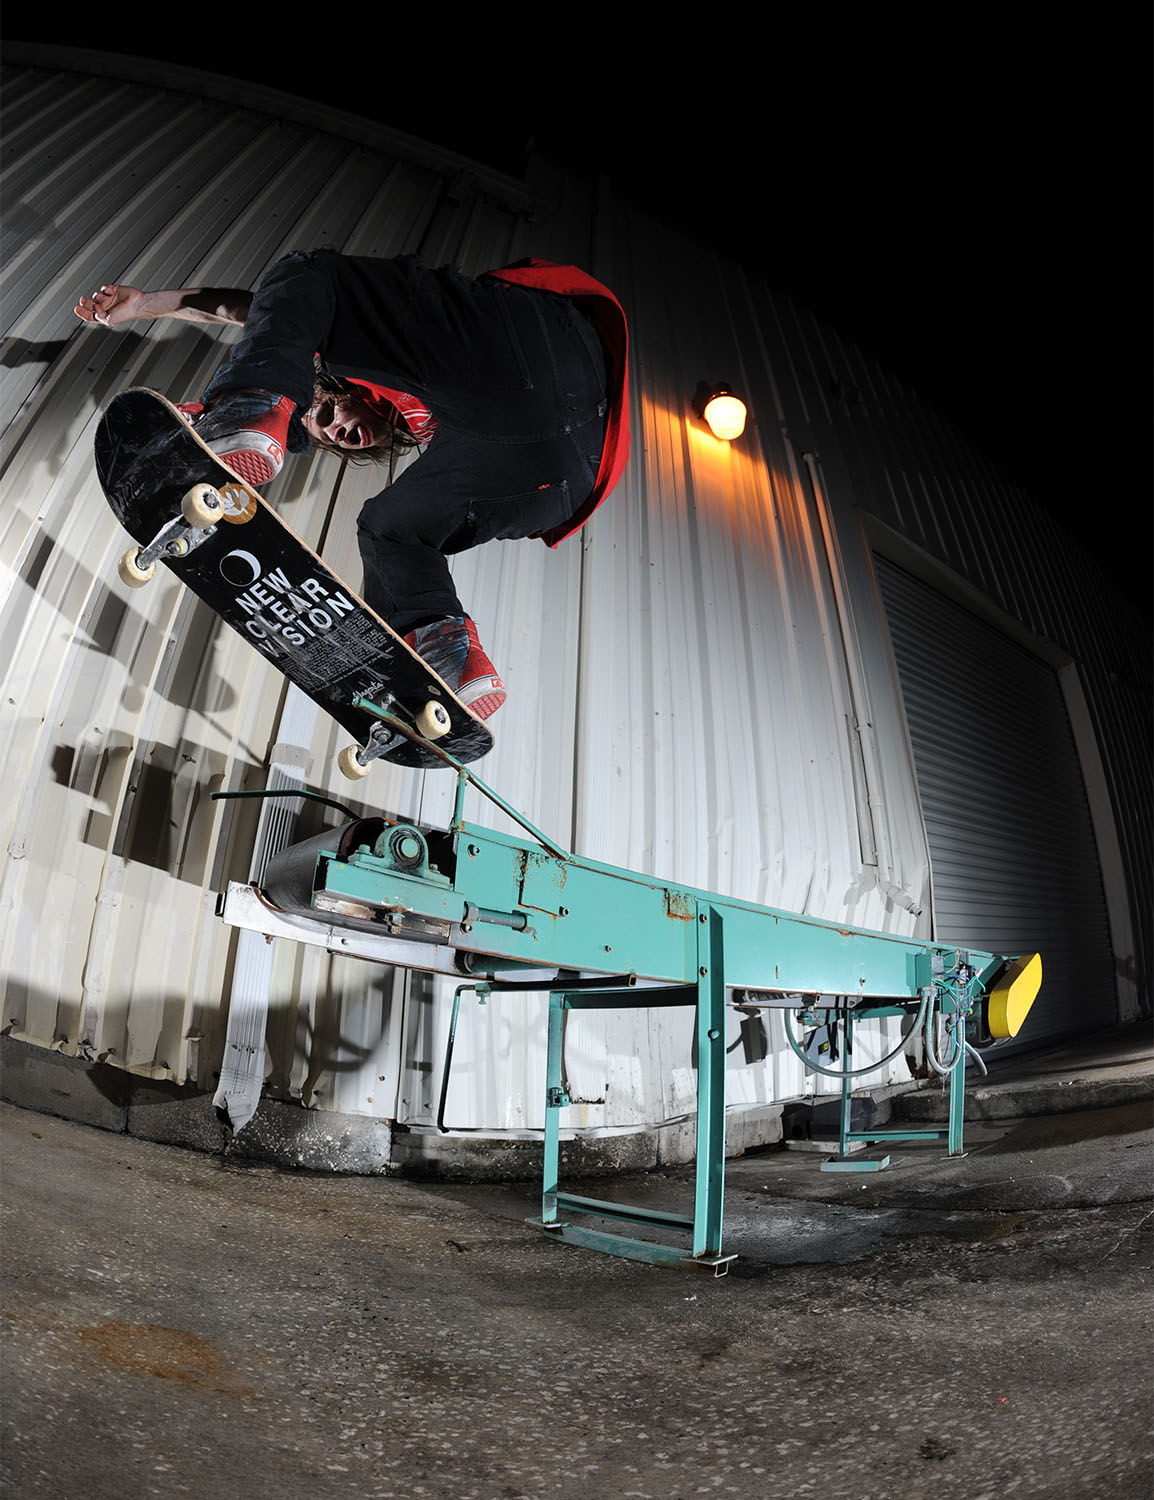 Frontside 50/50 to wallie out / Photo: Aaron Austin